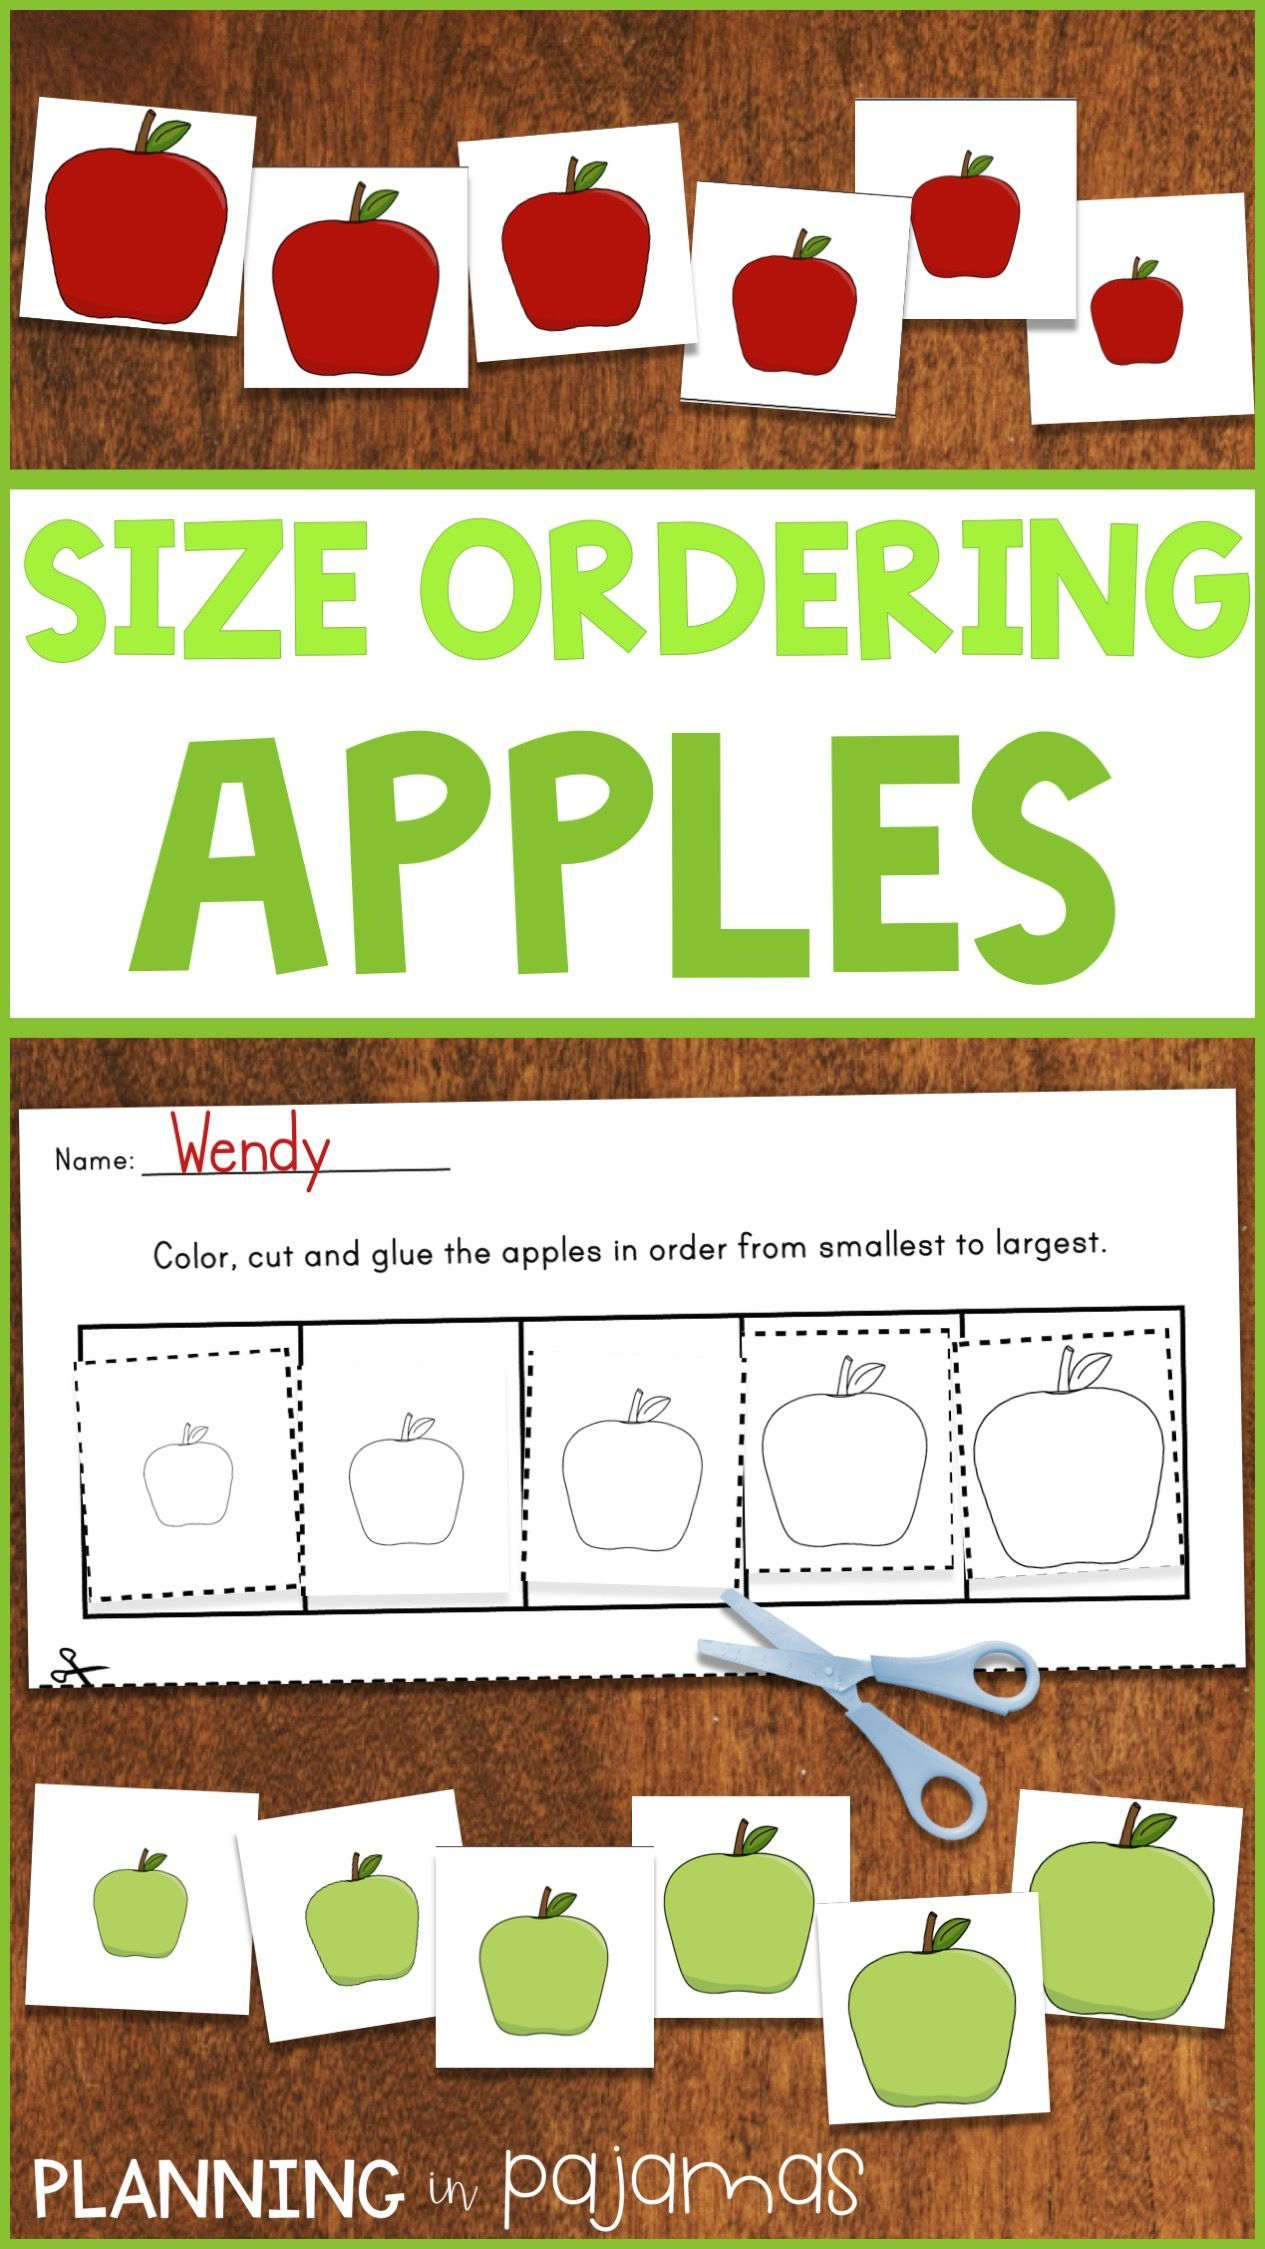 Apple Size Ordering From Smallest To Largest